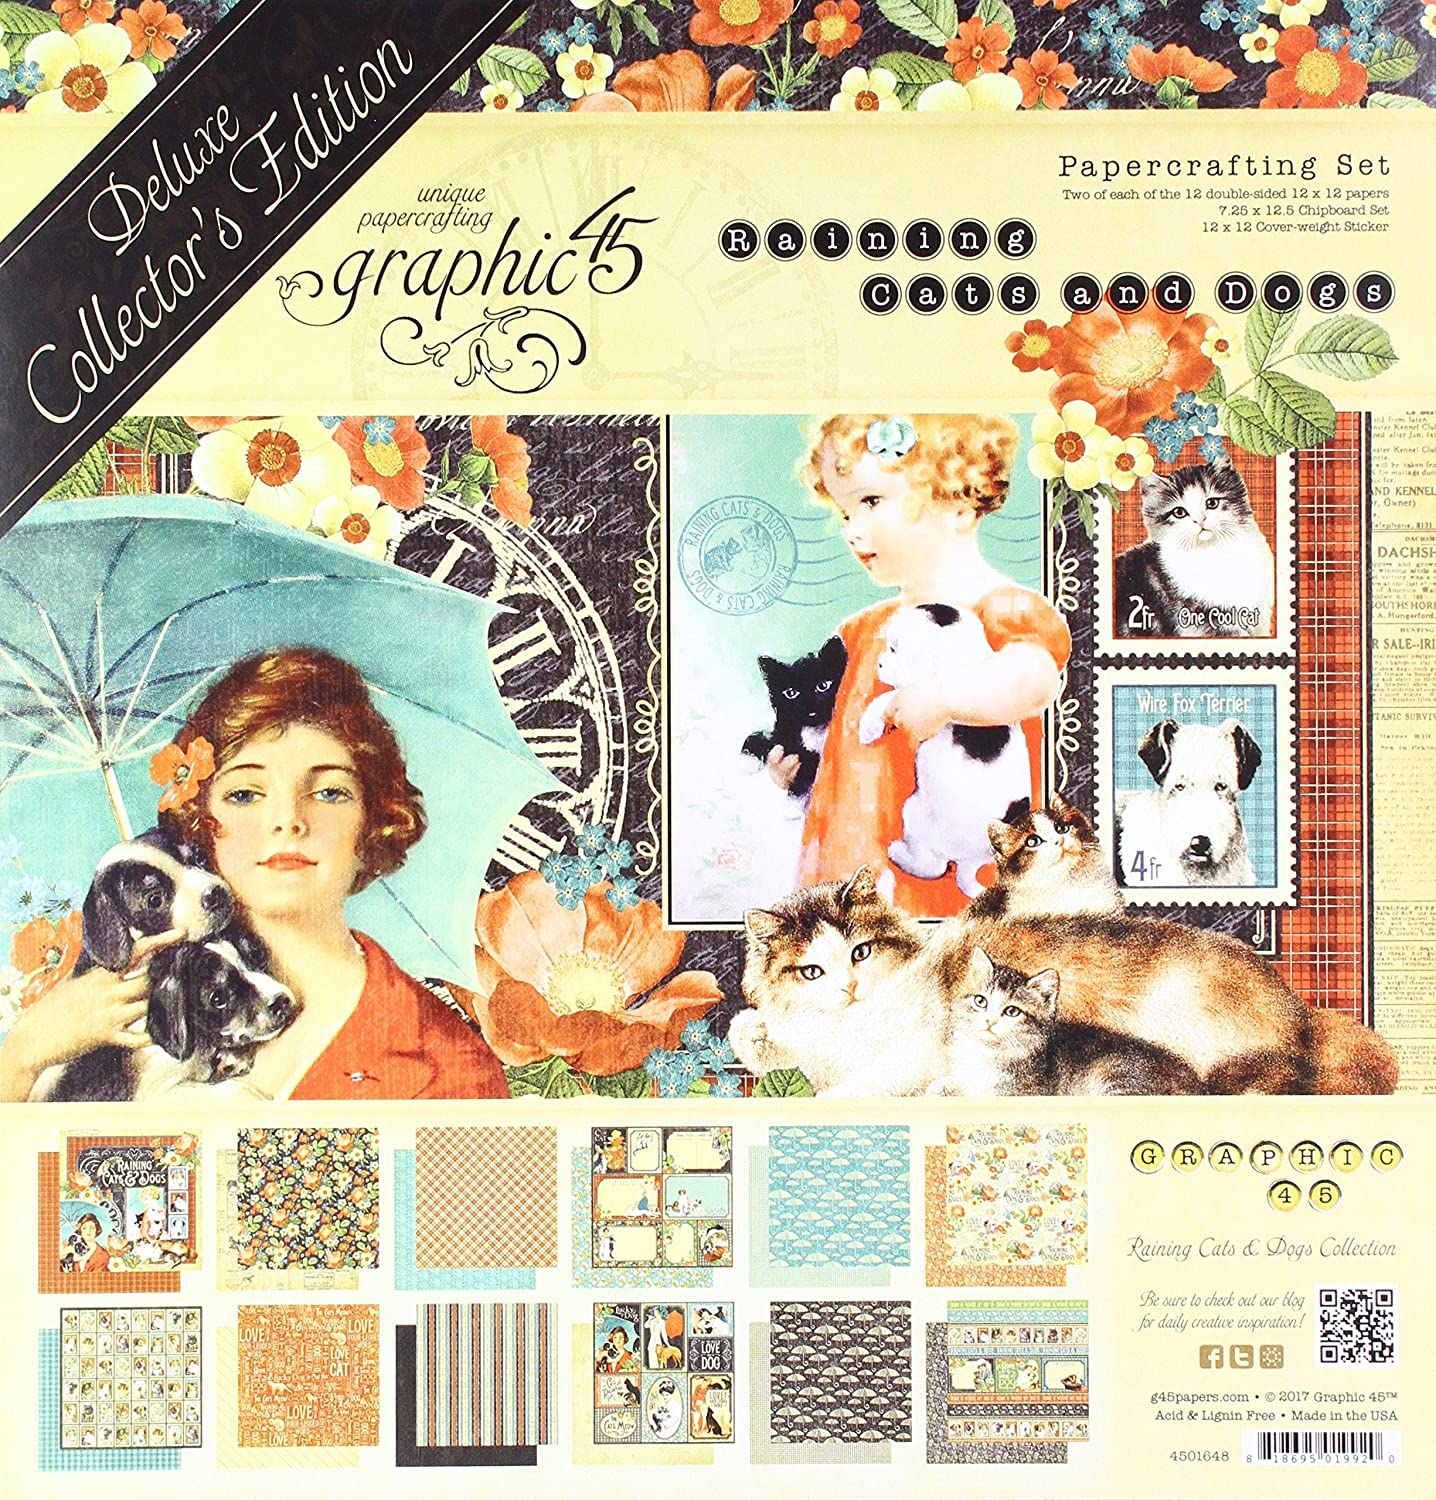 12x12 Inches Raining Cats and Dogs 4501648 - Deluxe Collectors Edition Graphic 45 Multicoloured